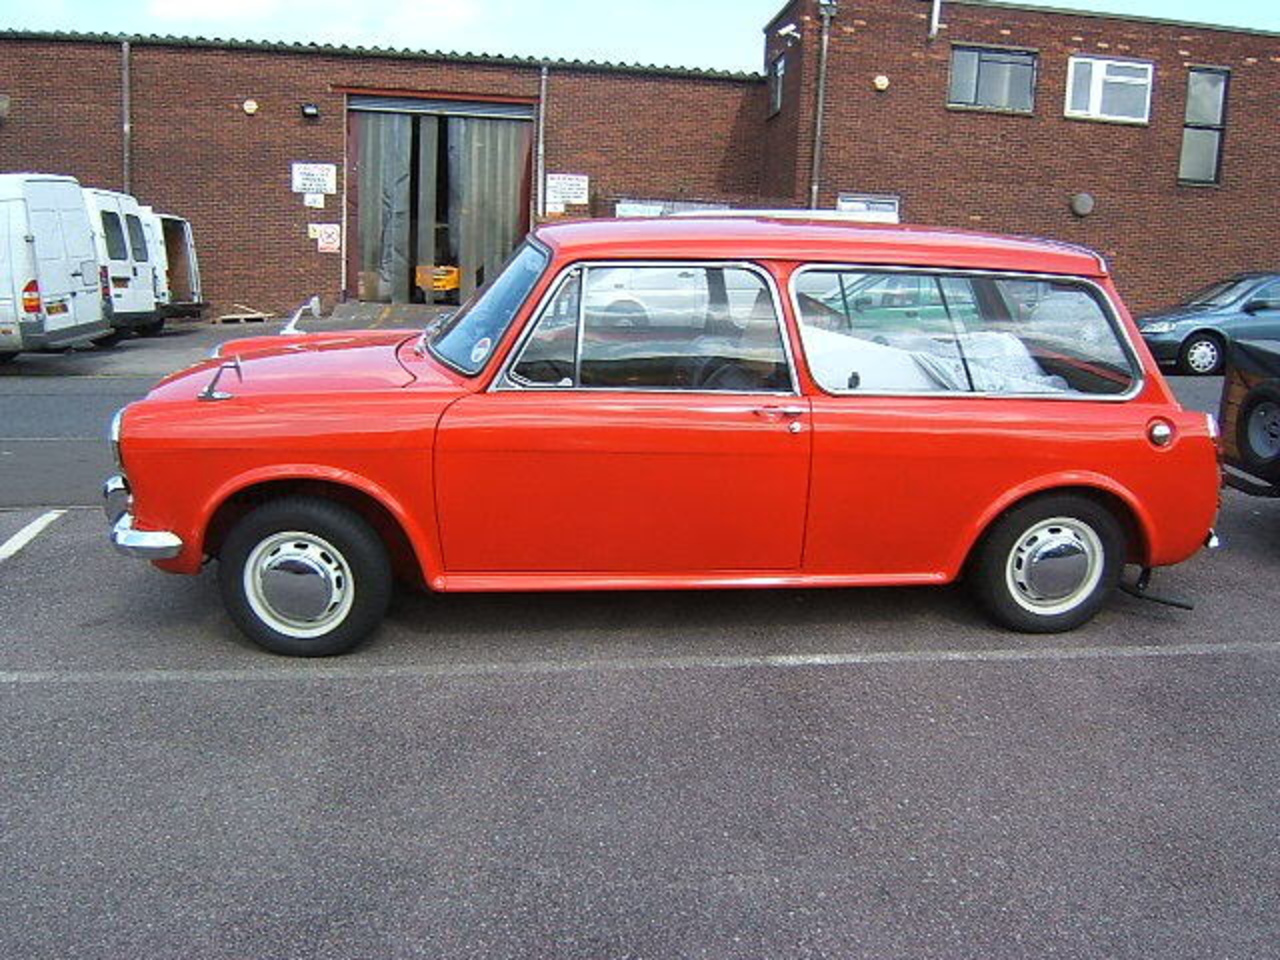 Austin 1300 Countryman - a gallery on Flickr